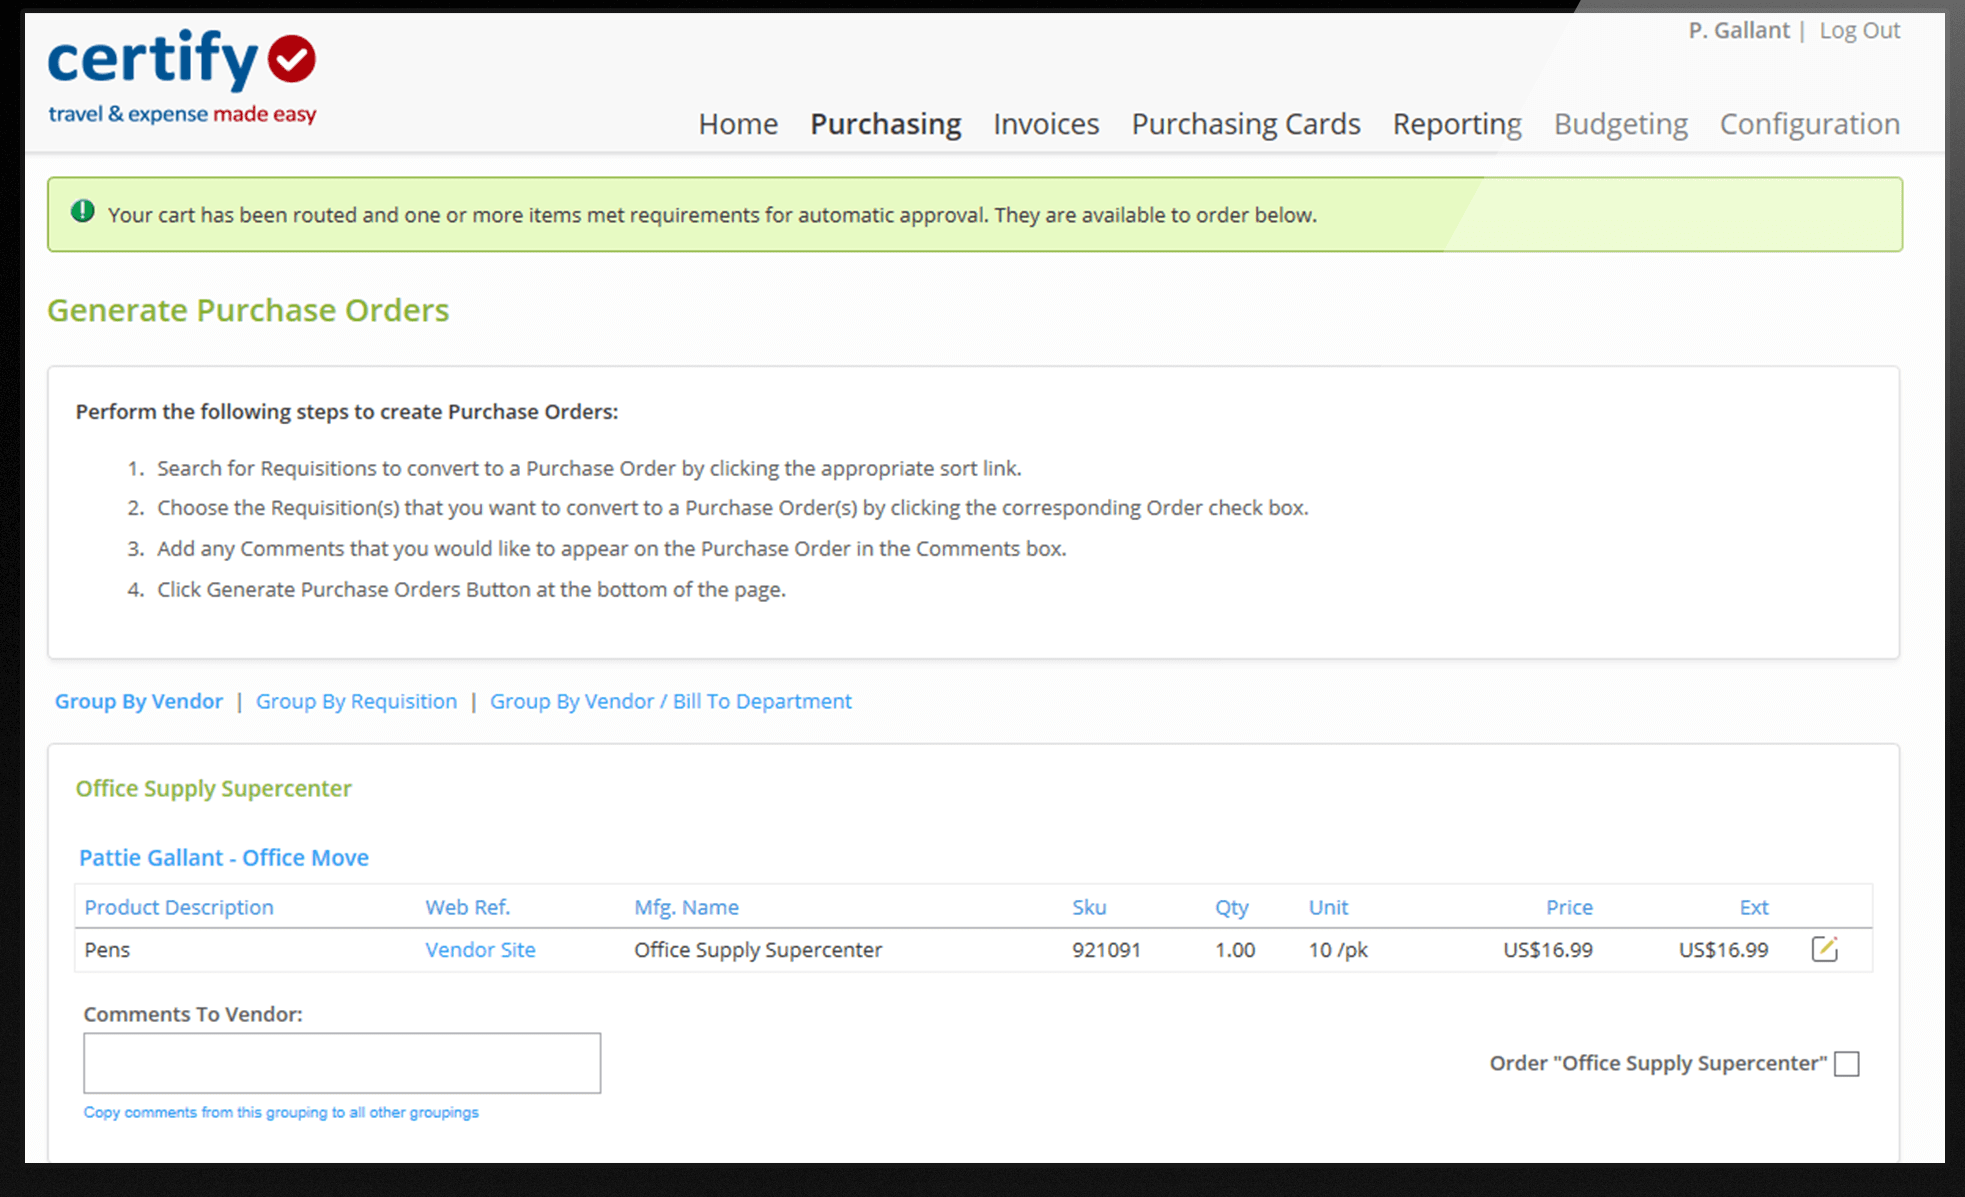 Purchase orders in Certify screenshot